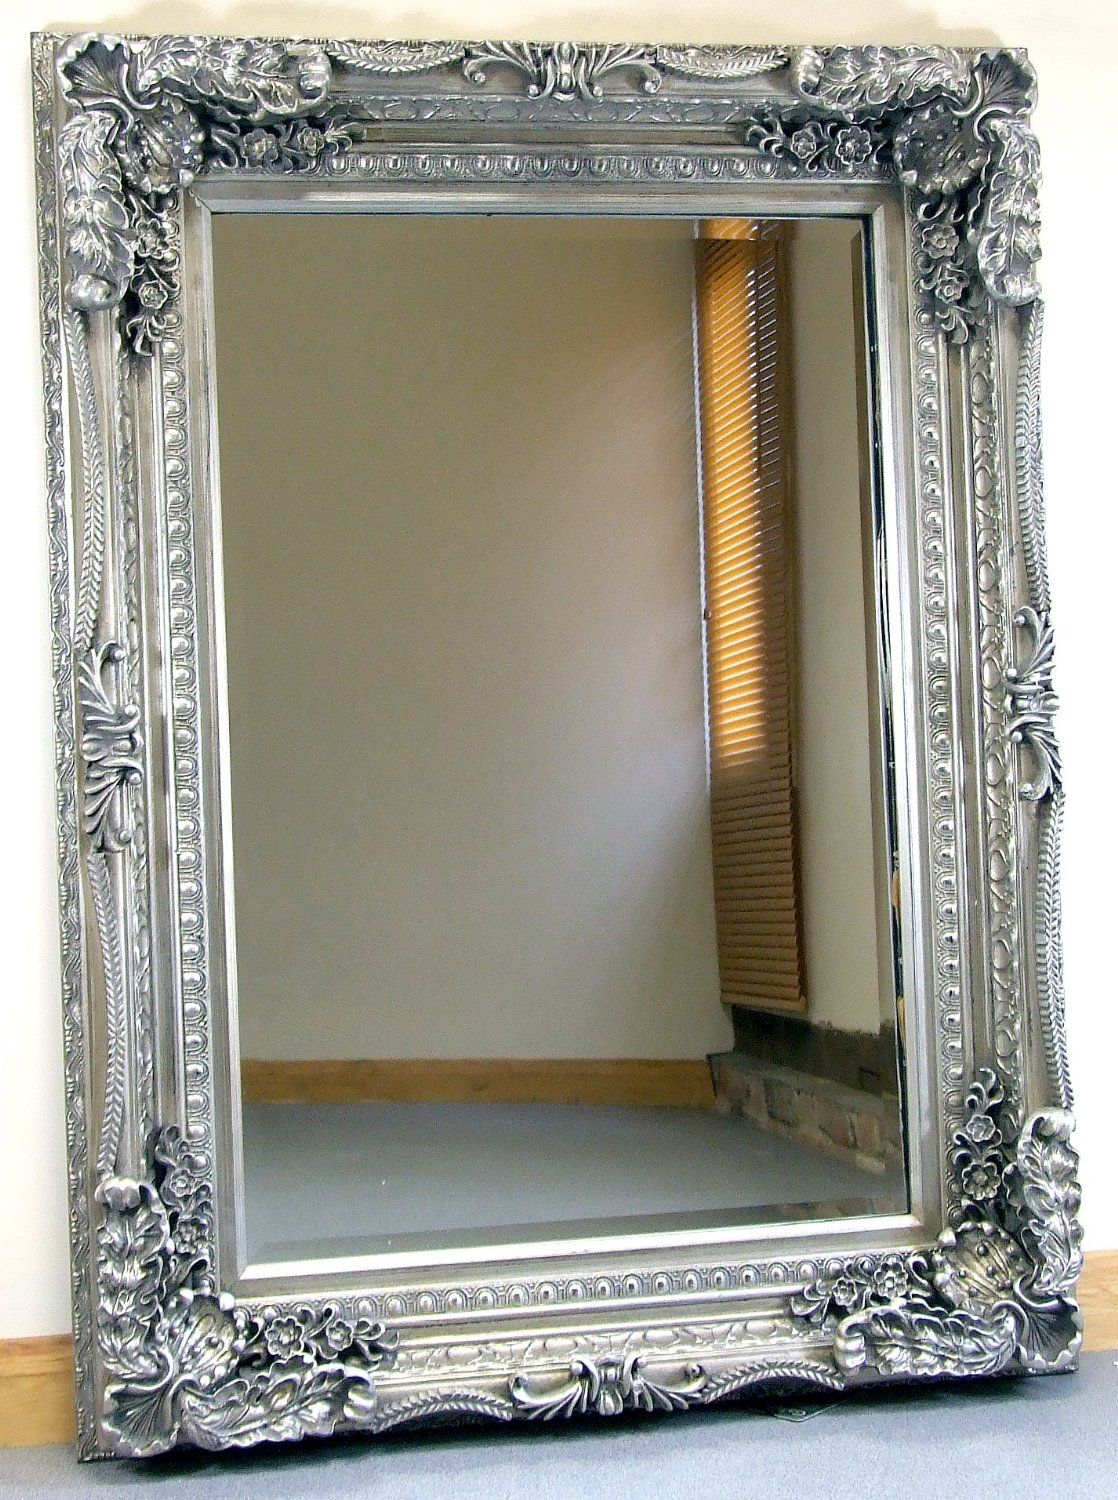 Framed Bathroom Mirrors Australia carved louis silver ornate french frame wall / over mantle mirror